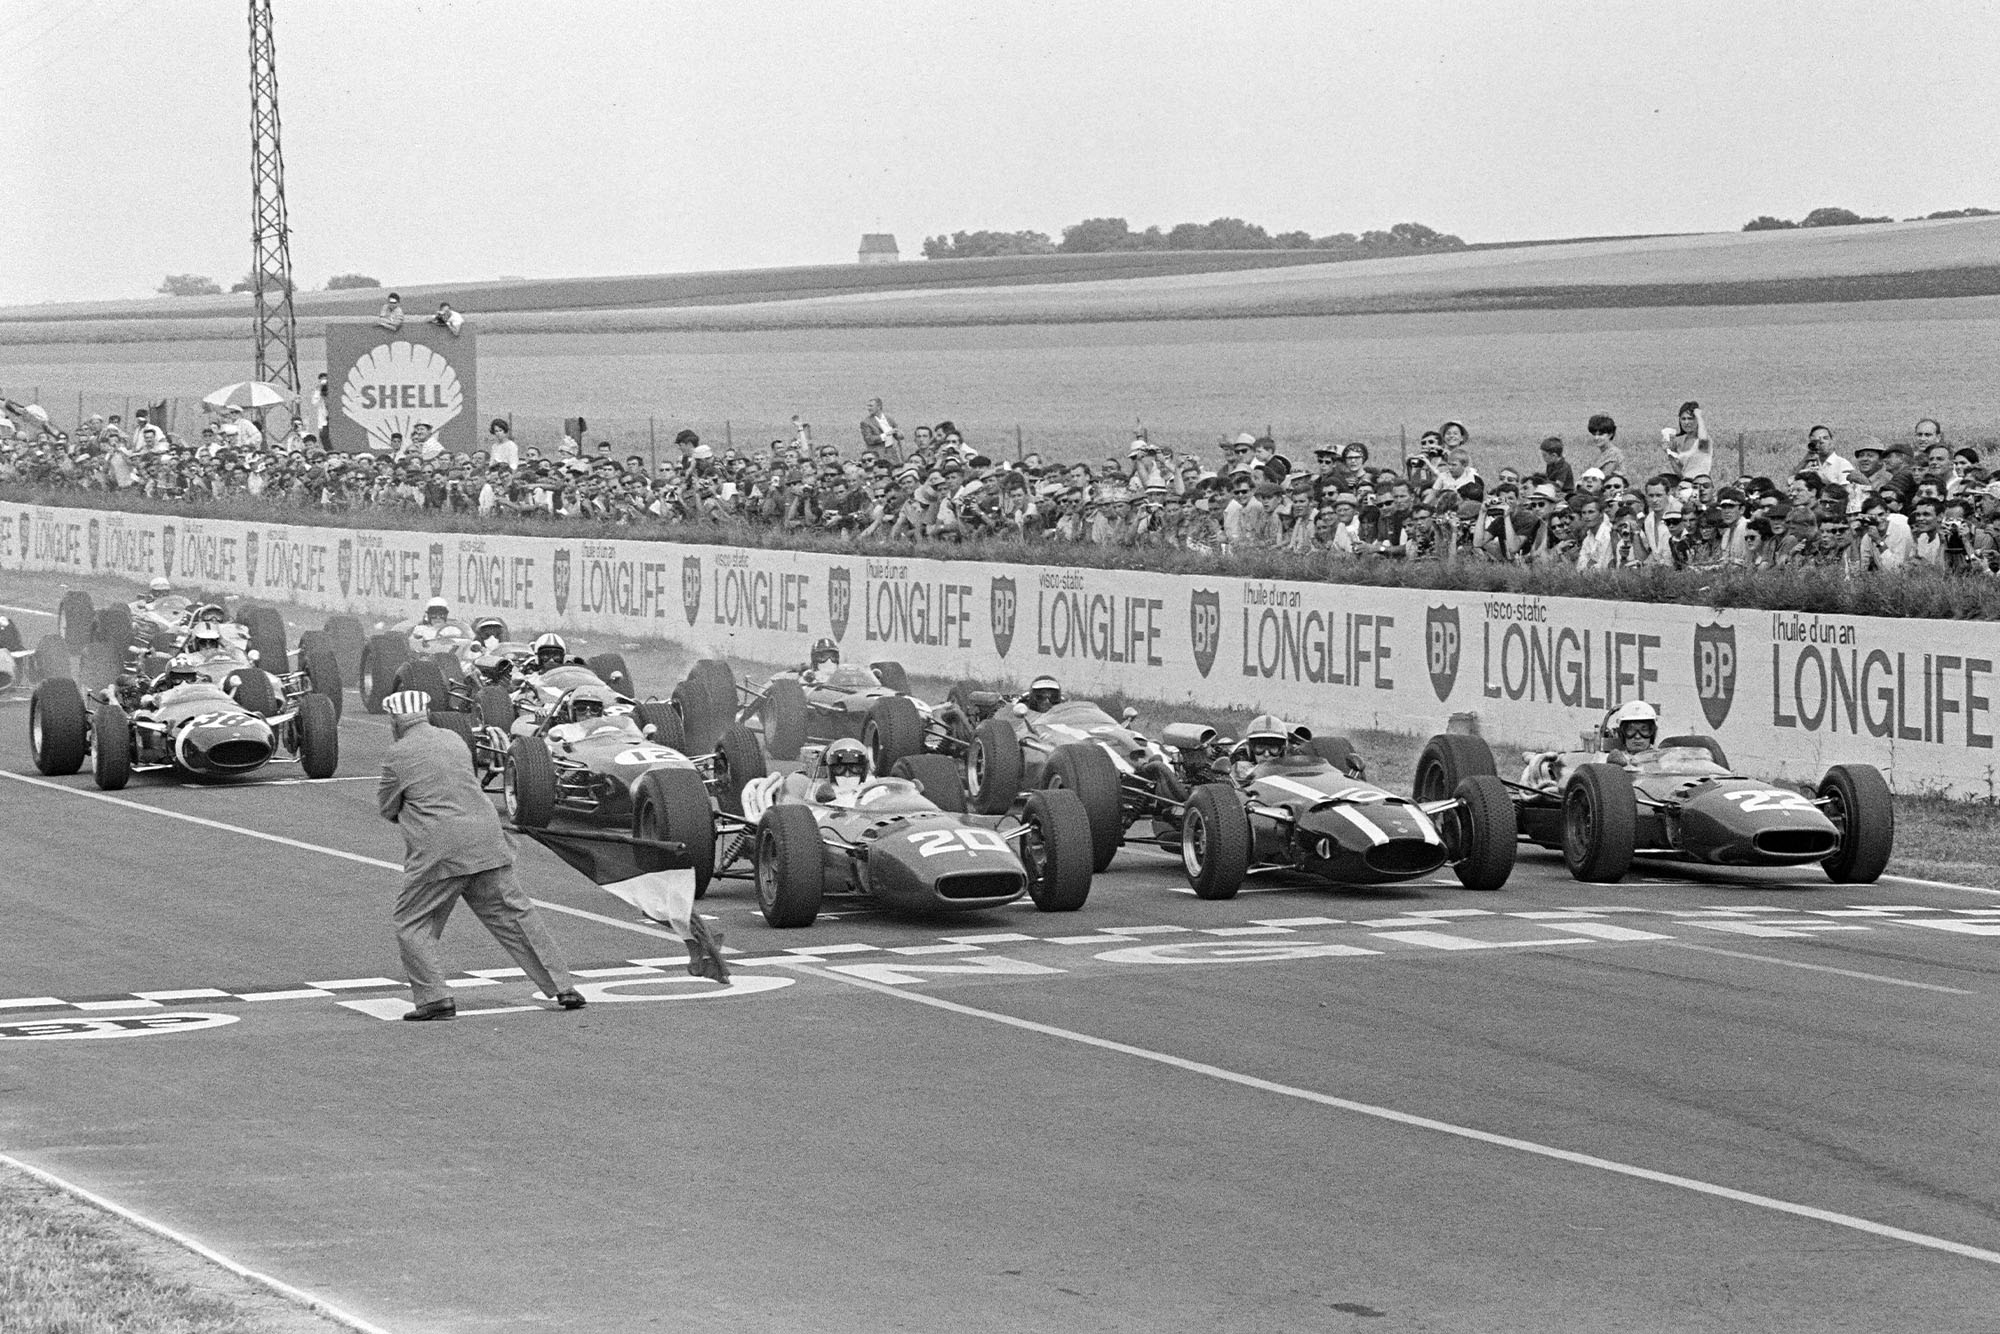 The race begins as the French Tricolore is waved, with Lorenzo Bandini, Ferrari 312, John Surtees, Cooper T81 Maserati and Mike Parkes, Ferrari 312 on the front row.